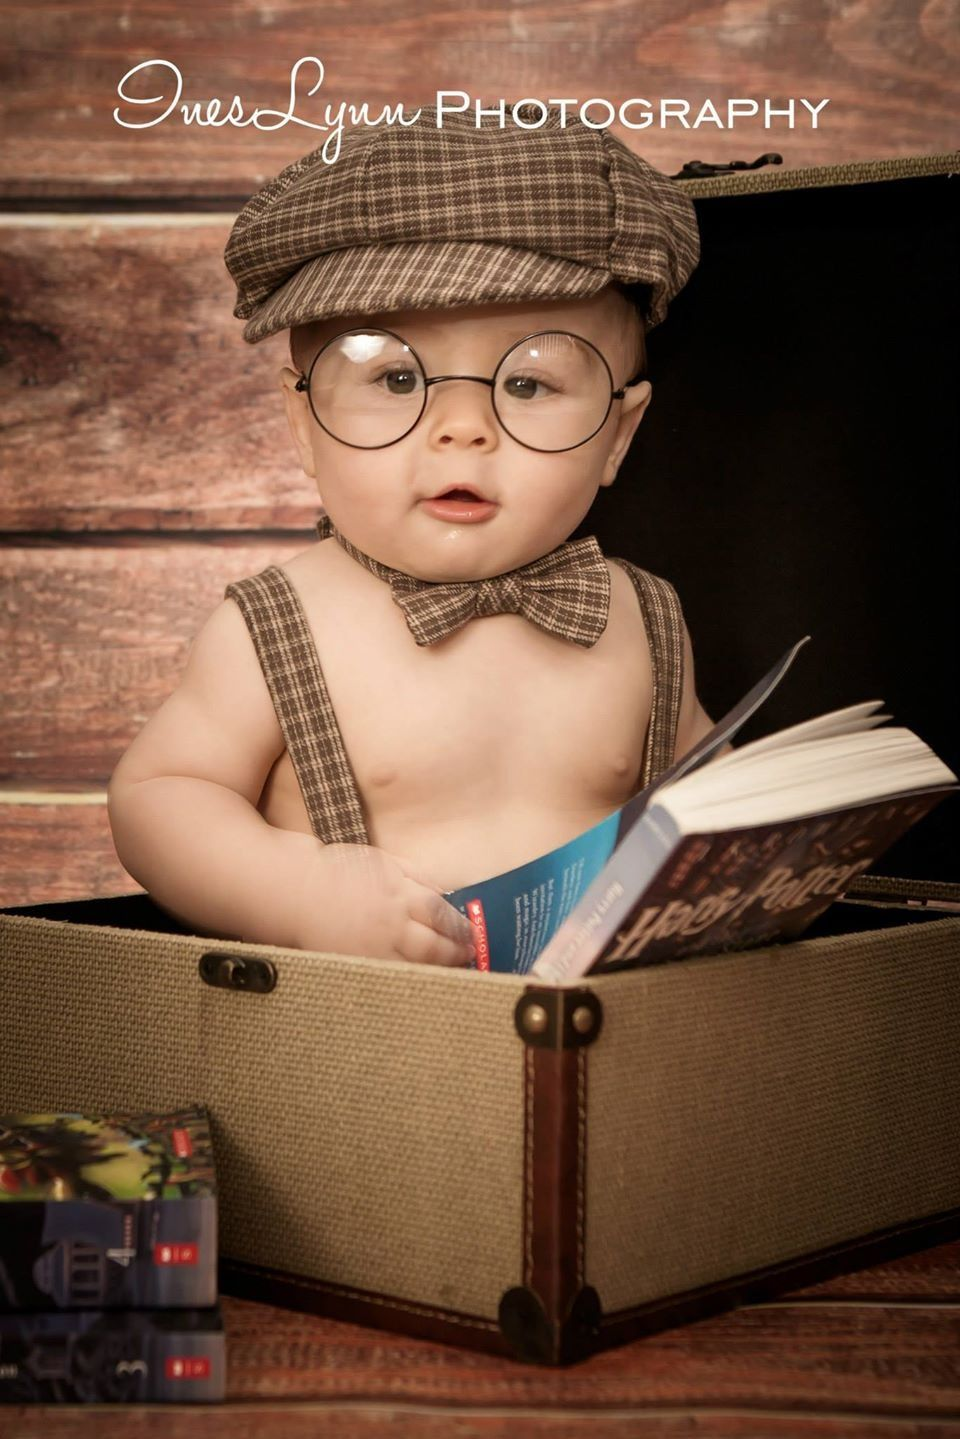 6 Month Old Baby Photography ideas. Baby boy photo ideas